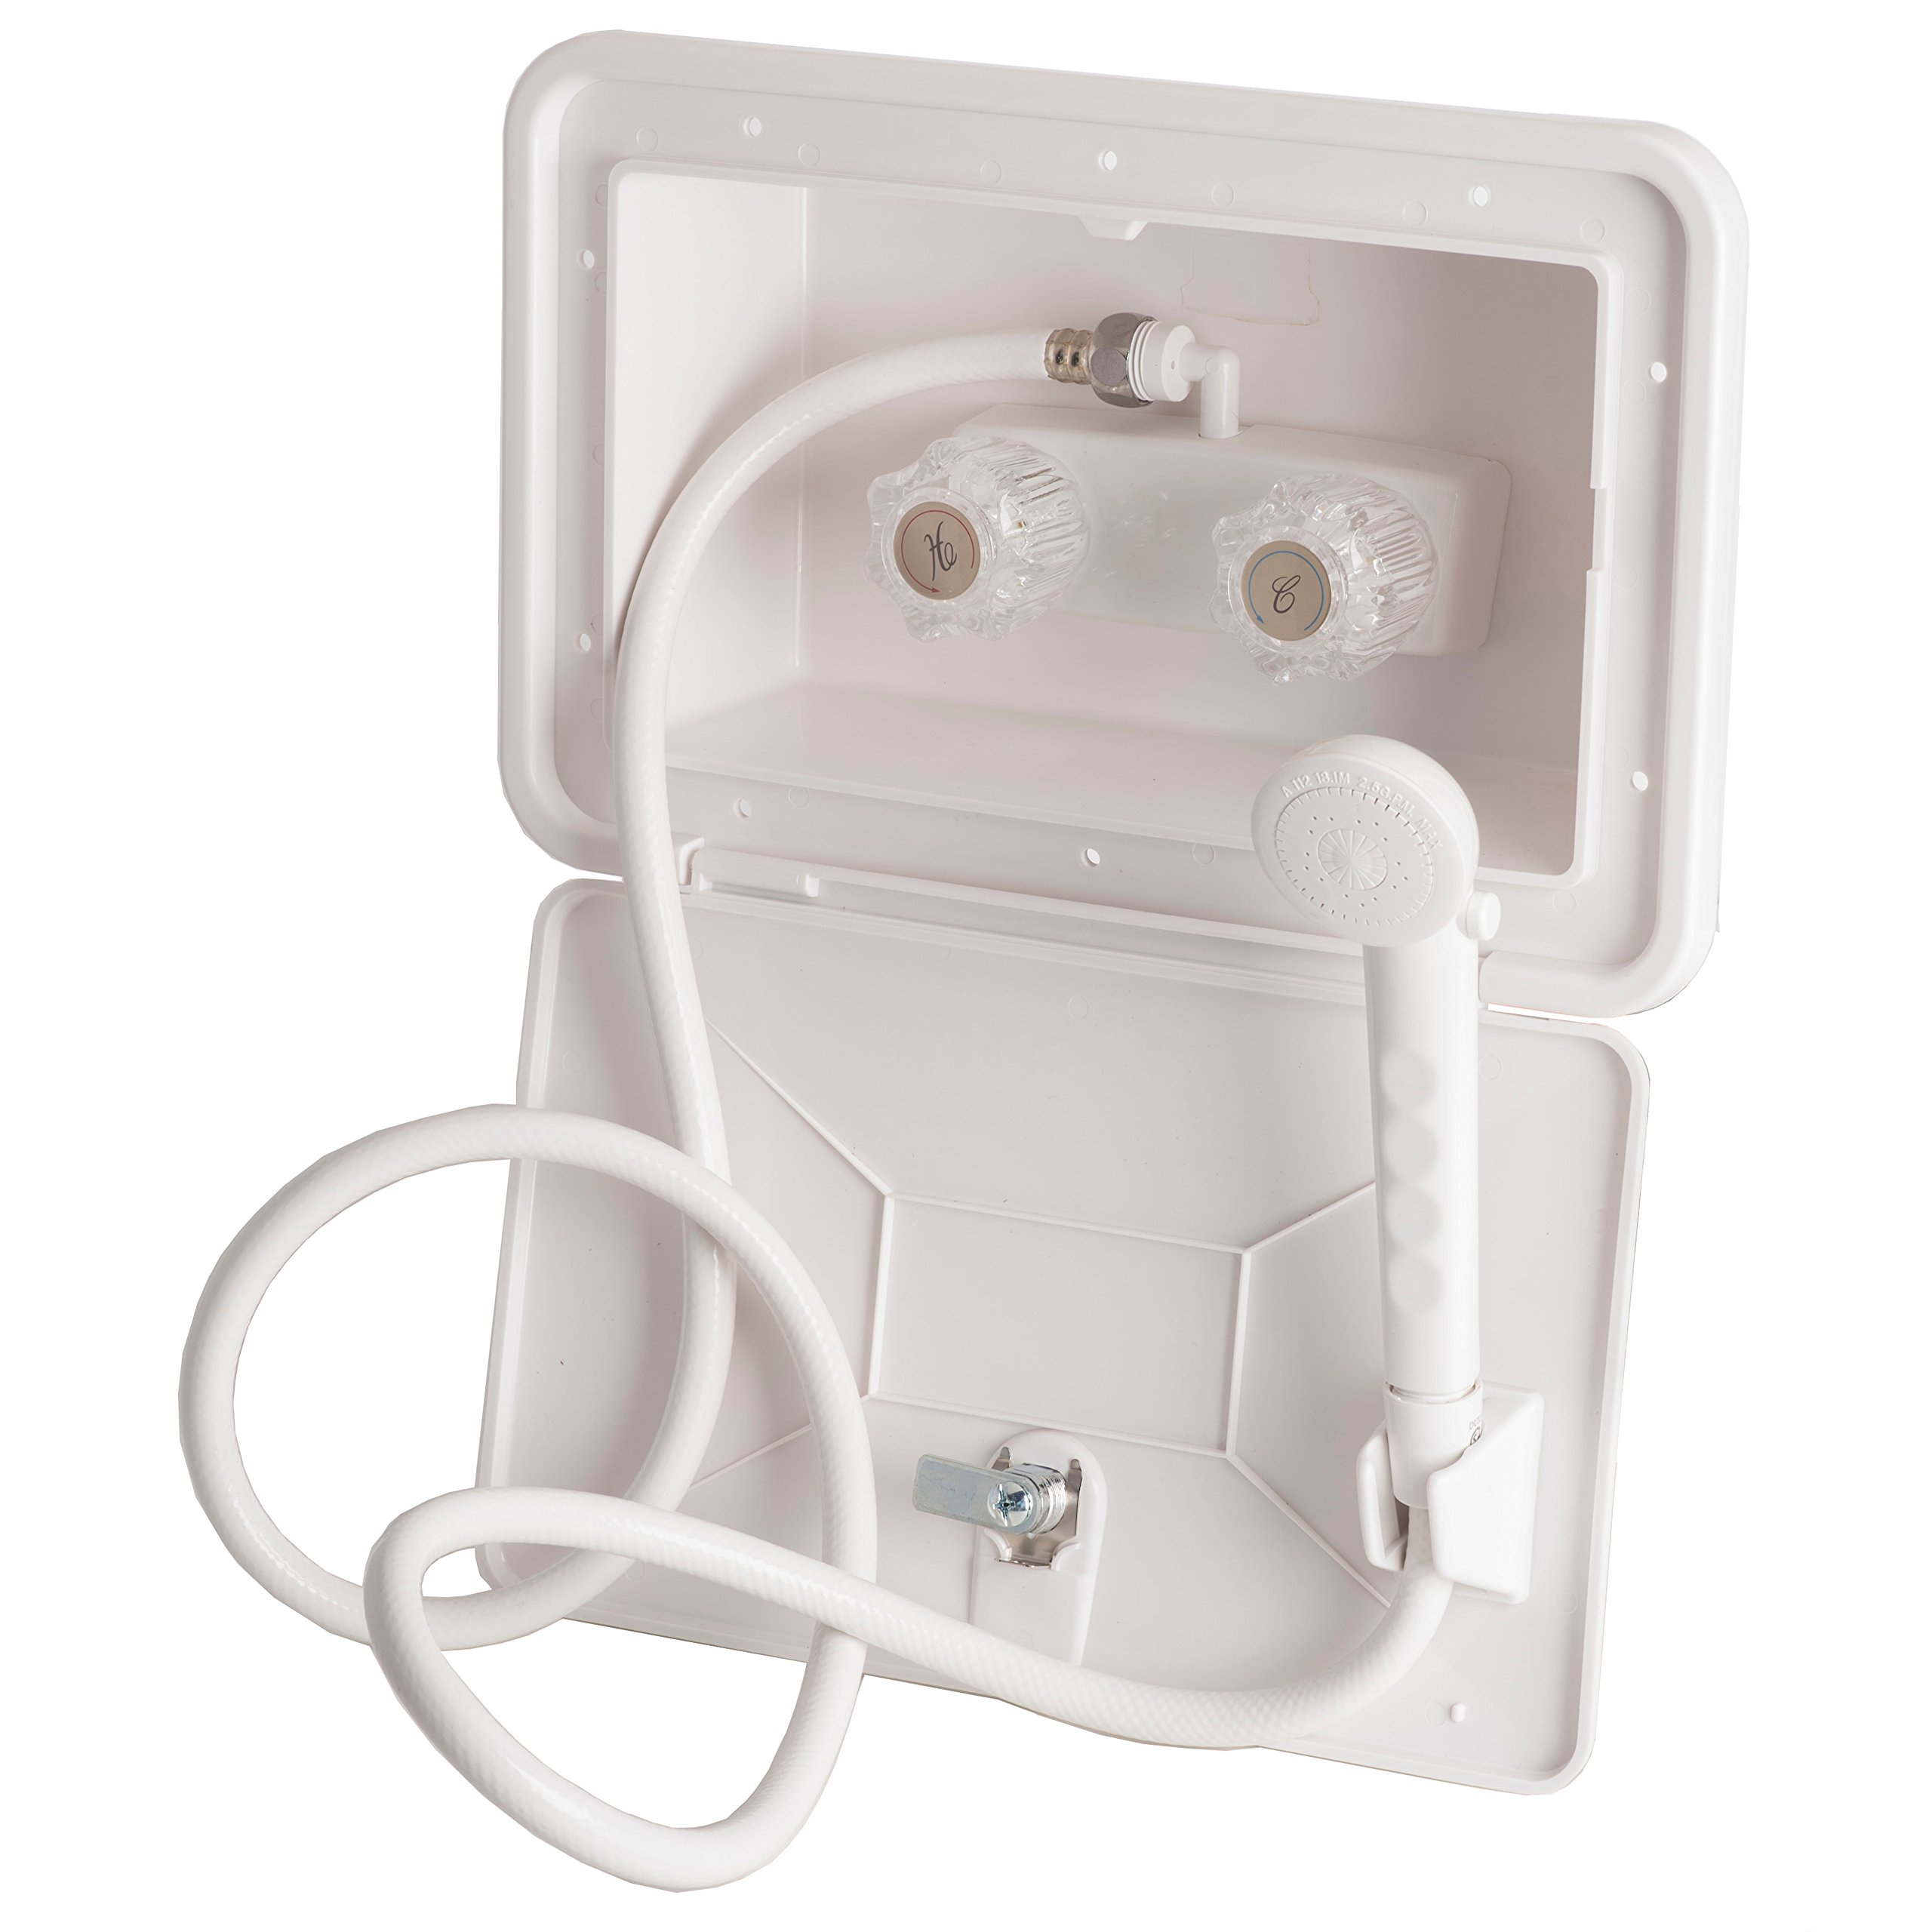 Builders Shoppe 4910WT RV Exterior Shower Box Kit with Shower Valve and Matching Hand-Held Shower Set, White Finish